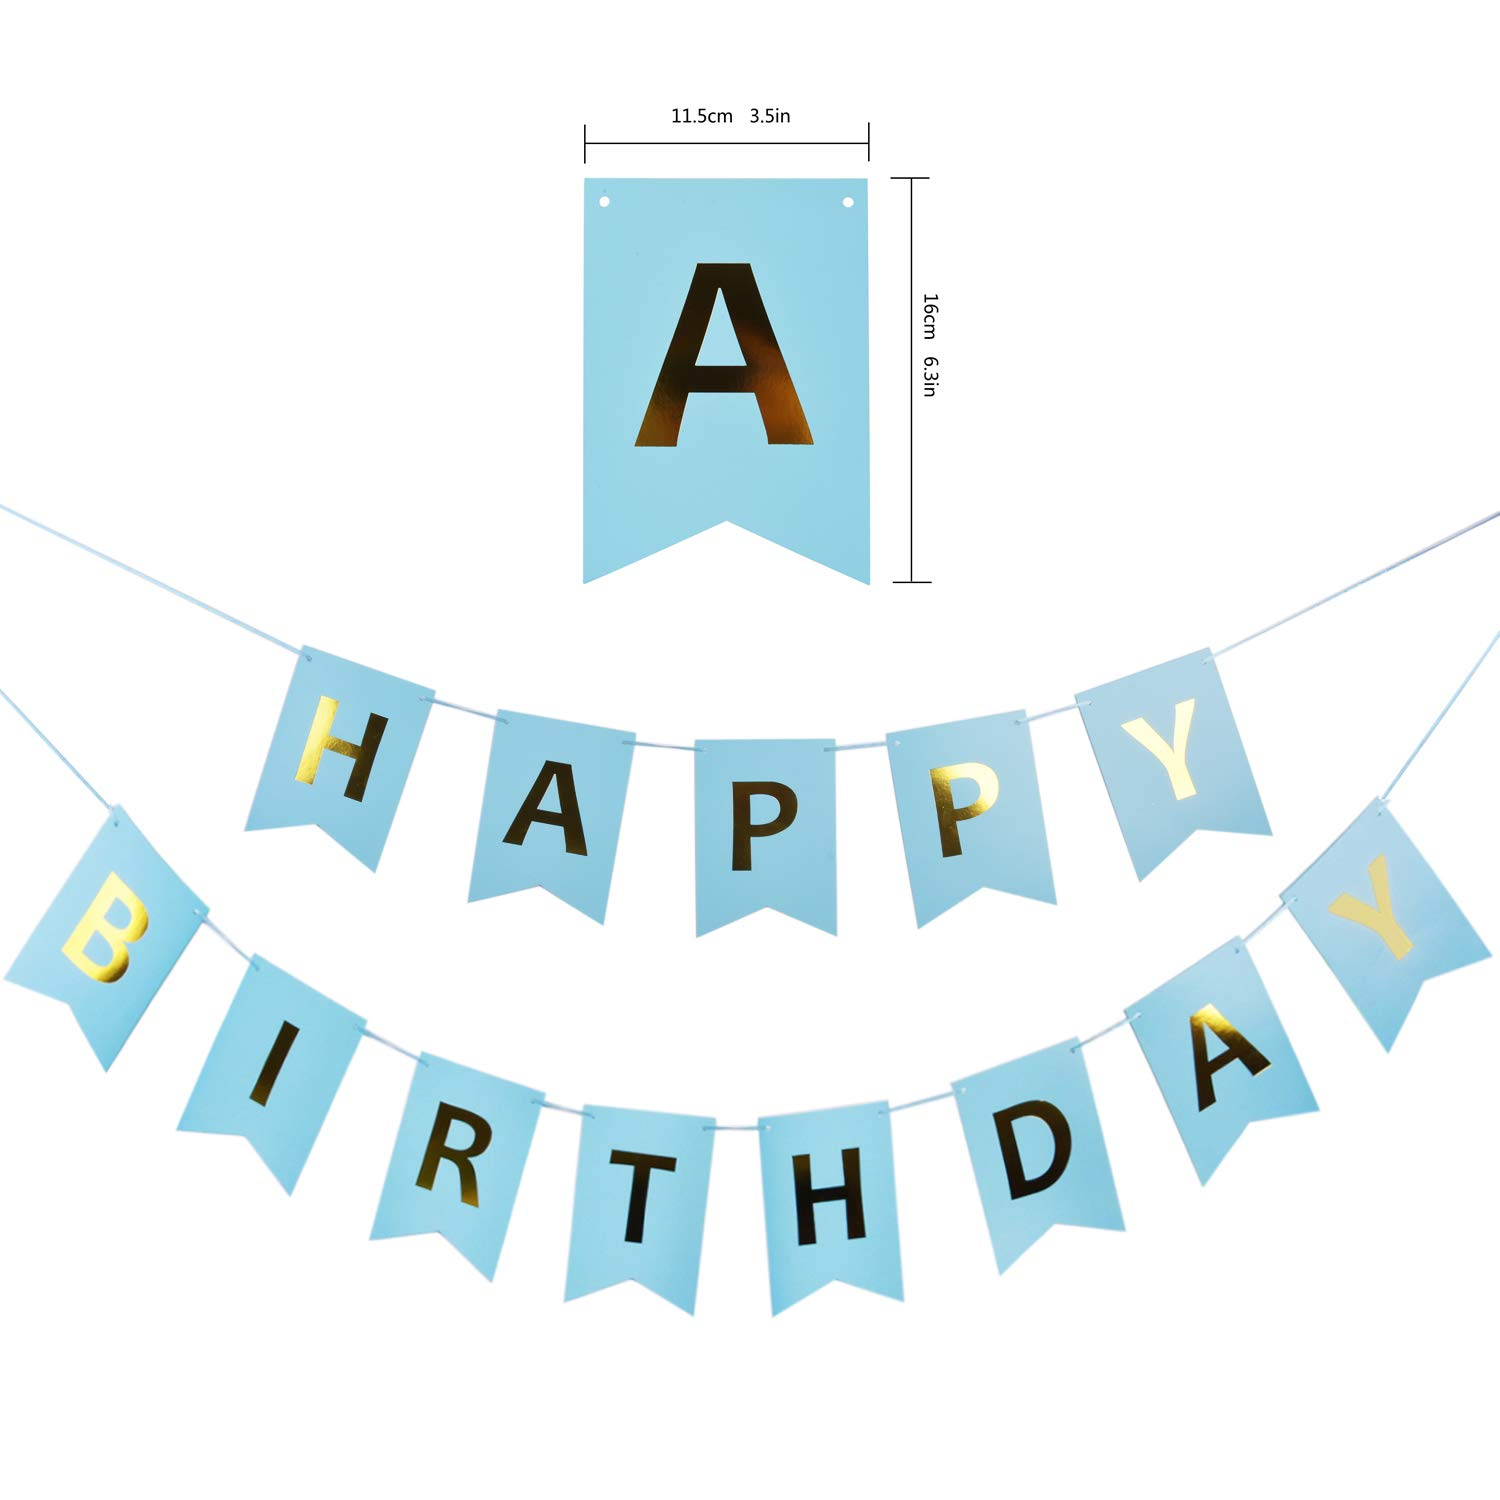 dog birthday decorations10pcs party banner decorative happy birthday letter banner with dog cat birthday